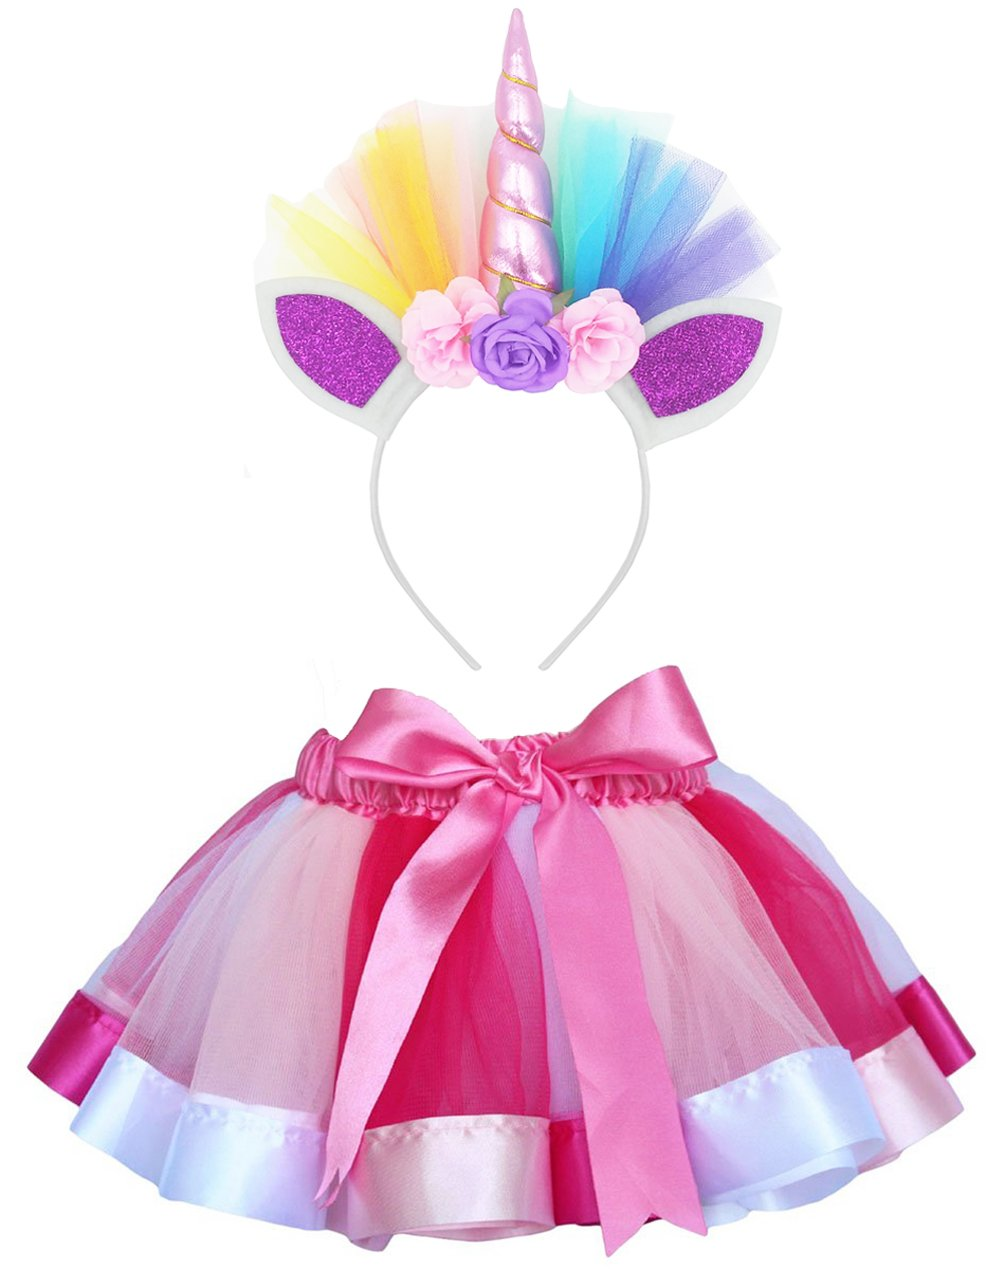 Loveyal Little Girls Layered Rainbow Tutu Skirts with Unicorn Horn Outfit Princess Ballet Dance Costumes (Rose, M,2-4 Years)